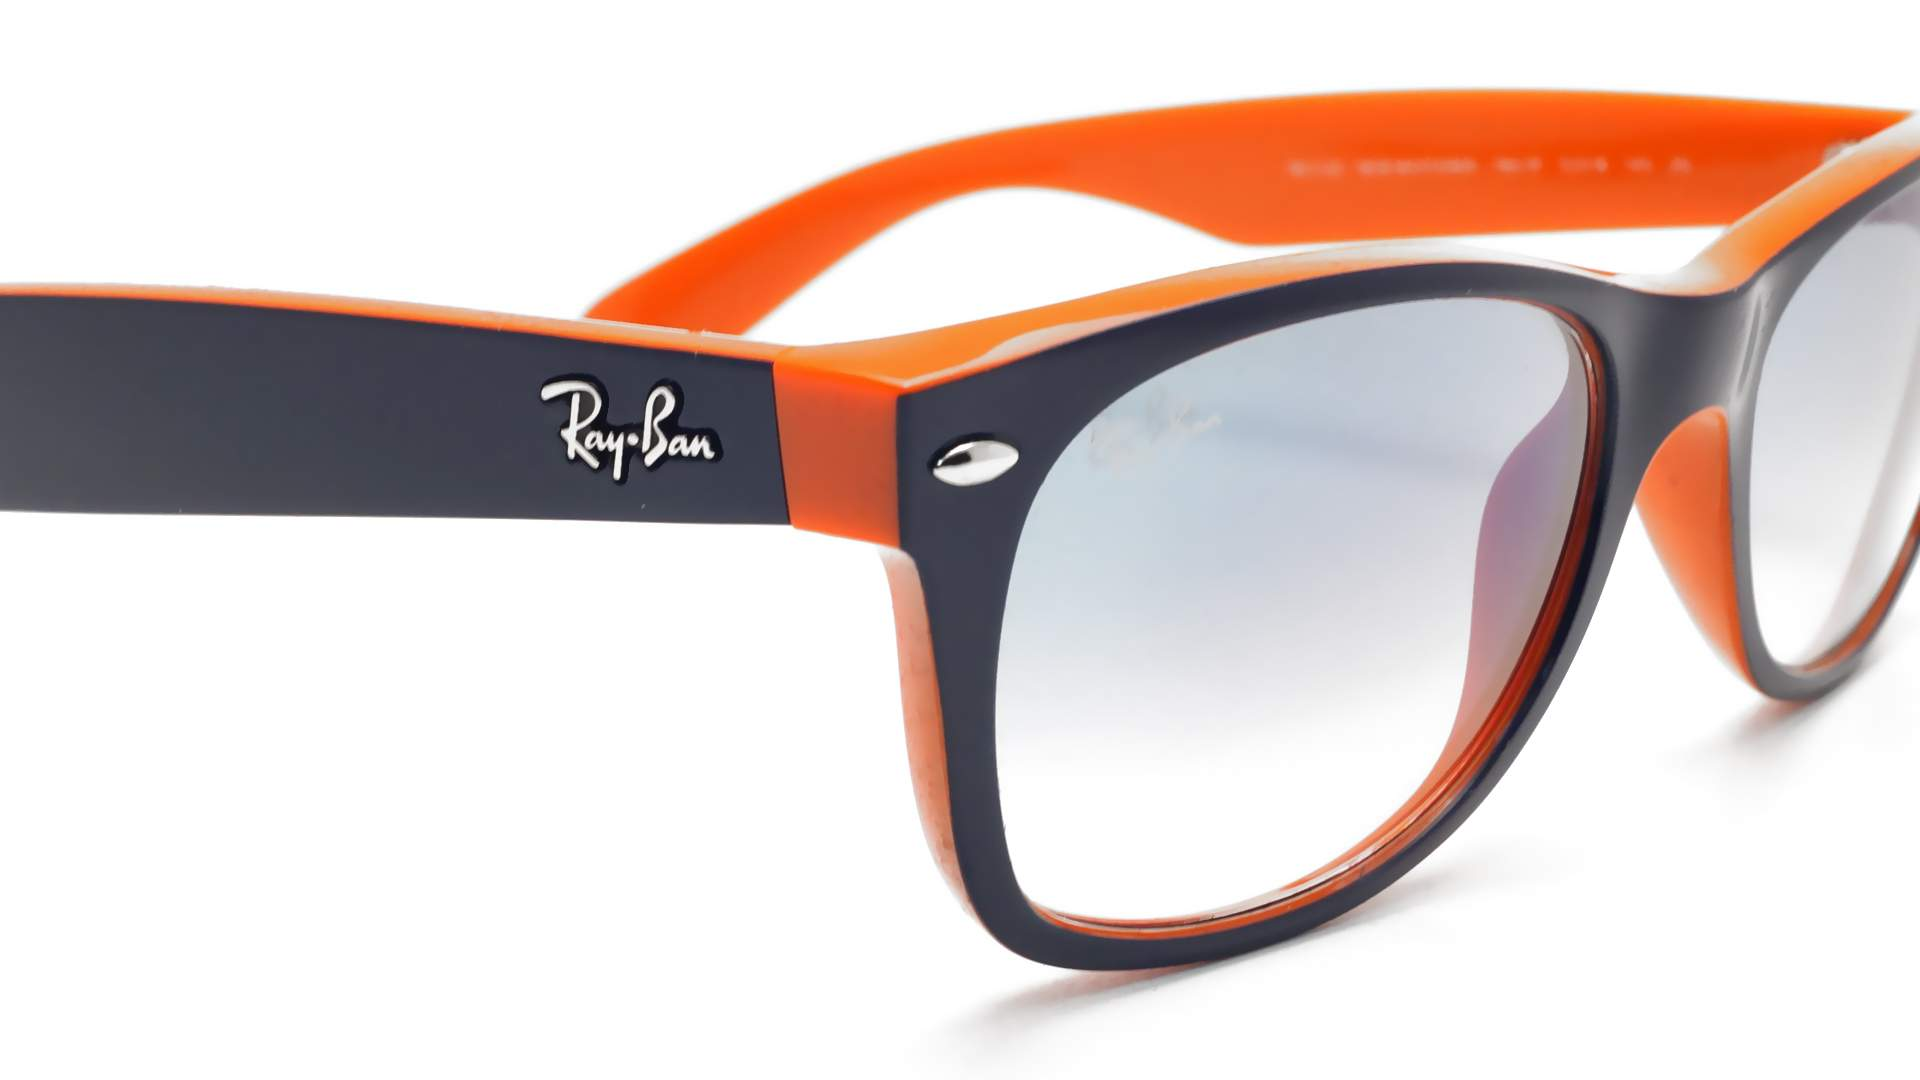 Lunettes de soleil Ray-Ban New Wayfarer Orange RB2132 789 3F 55-18 Large  Dégradés 2ea204b4a860